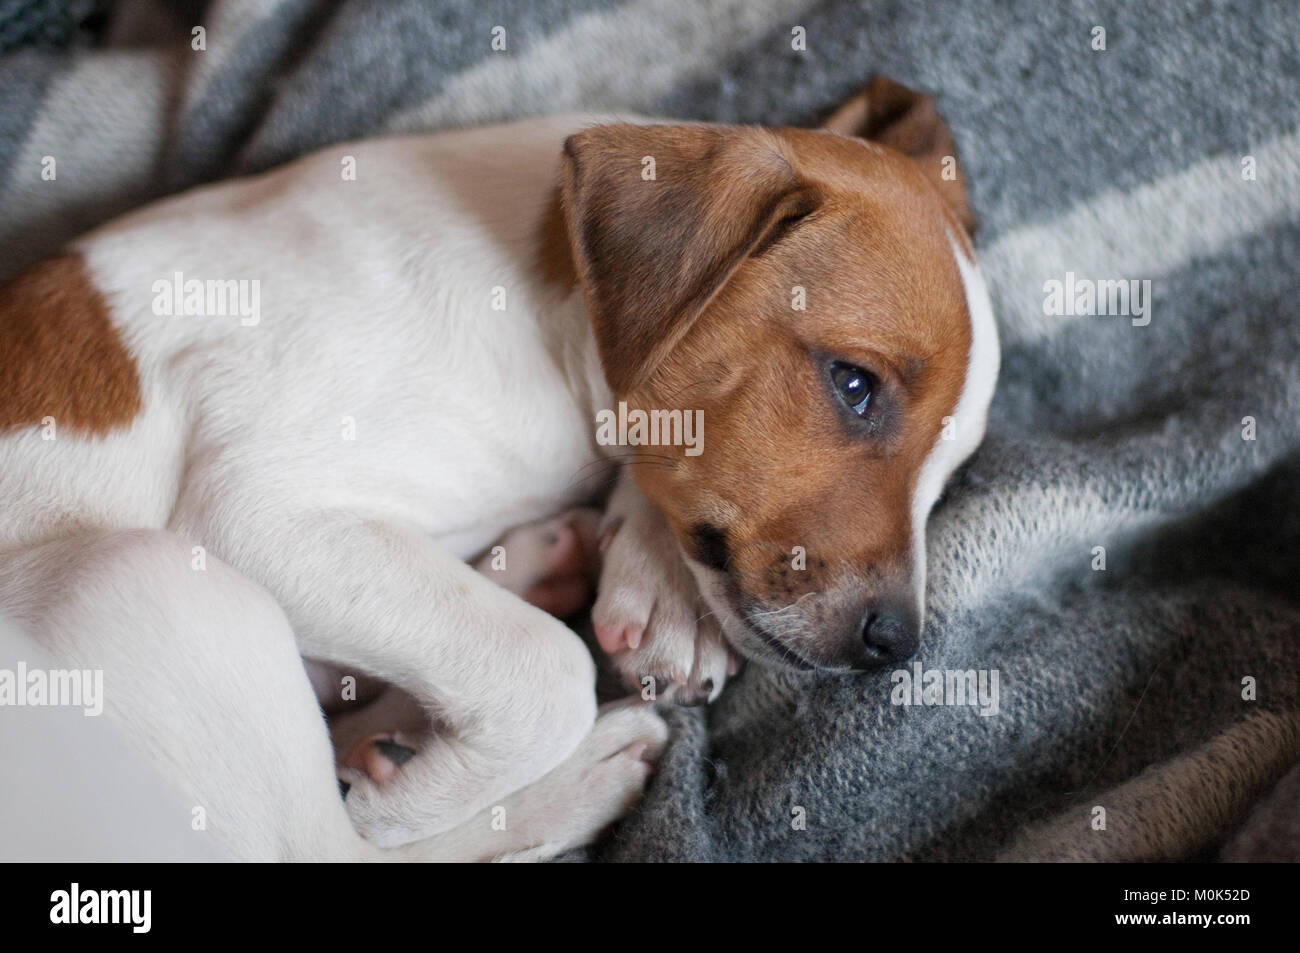 Cute two months old Danish Swedish Farmdog puppy. This breed, which originates from Denmark and southern Sweden - Stock Image